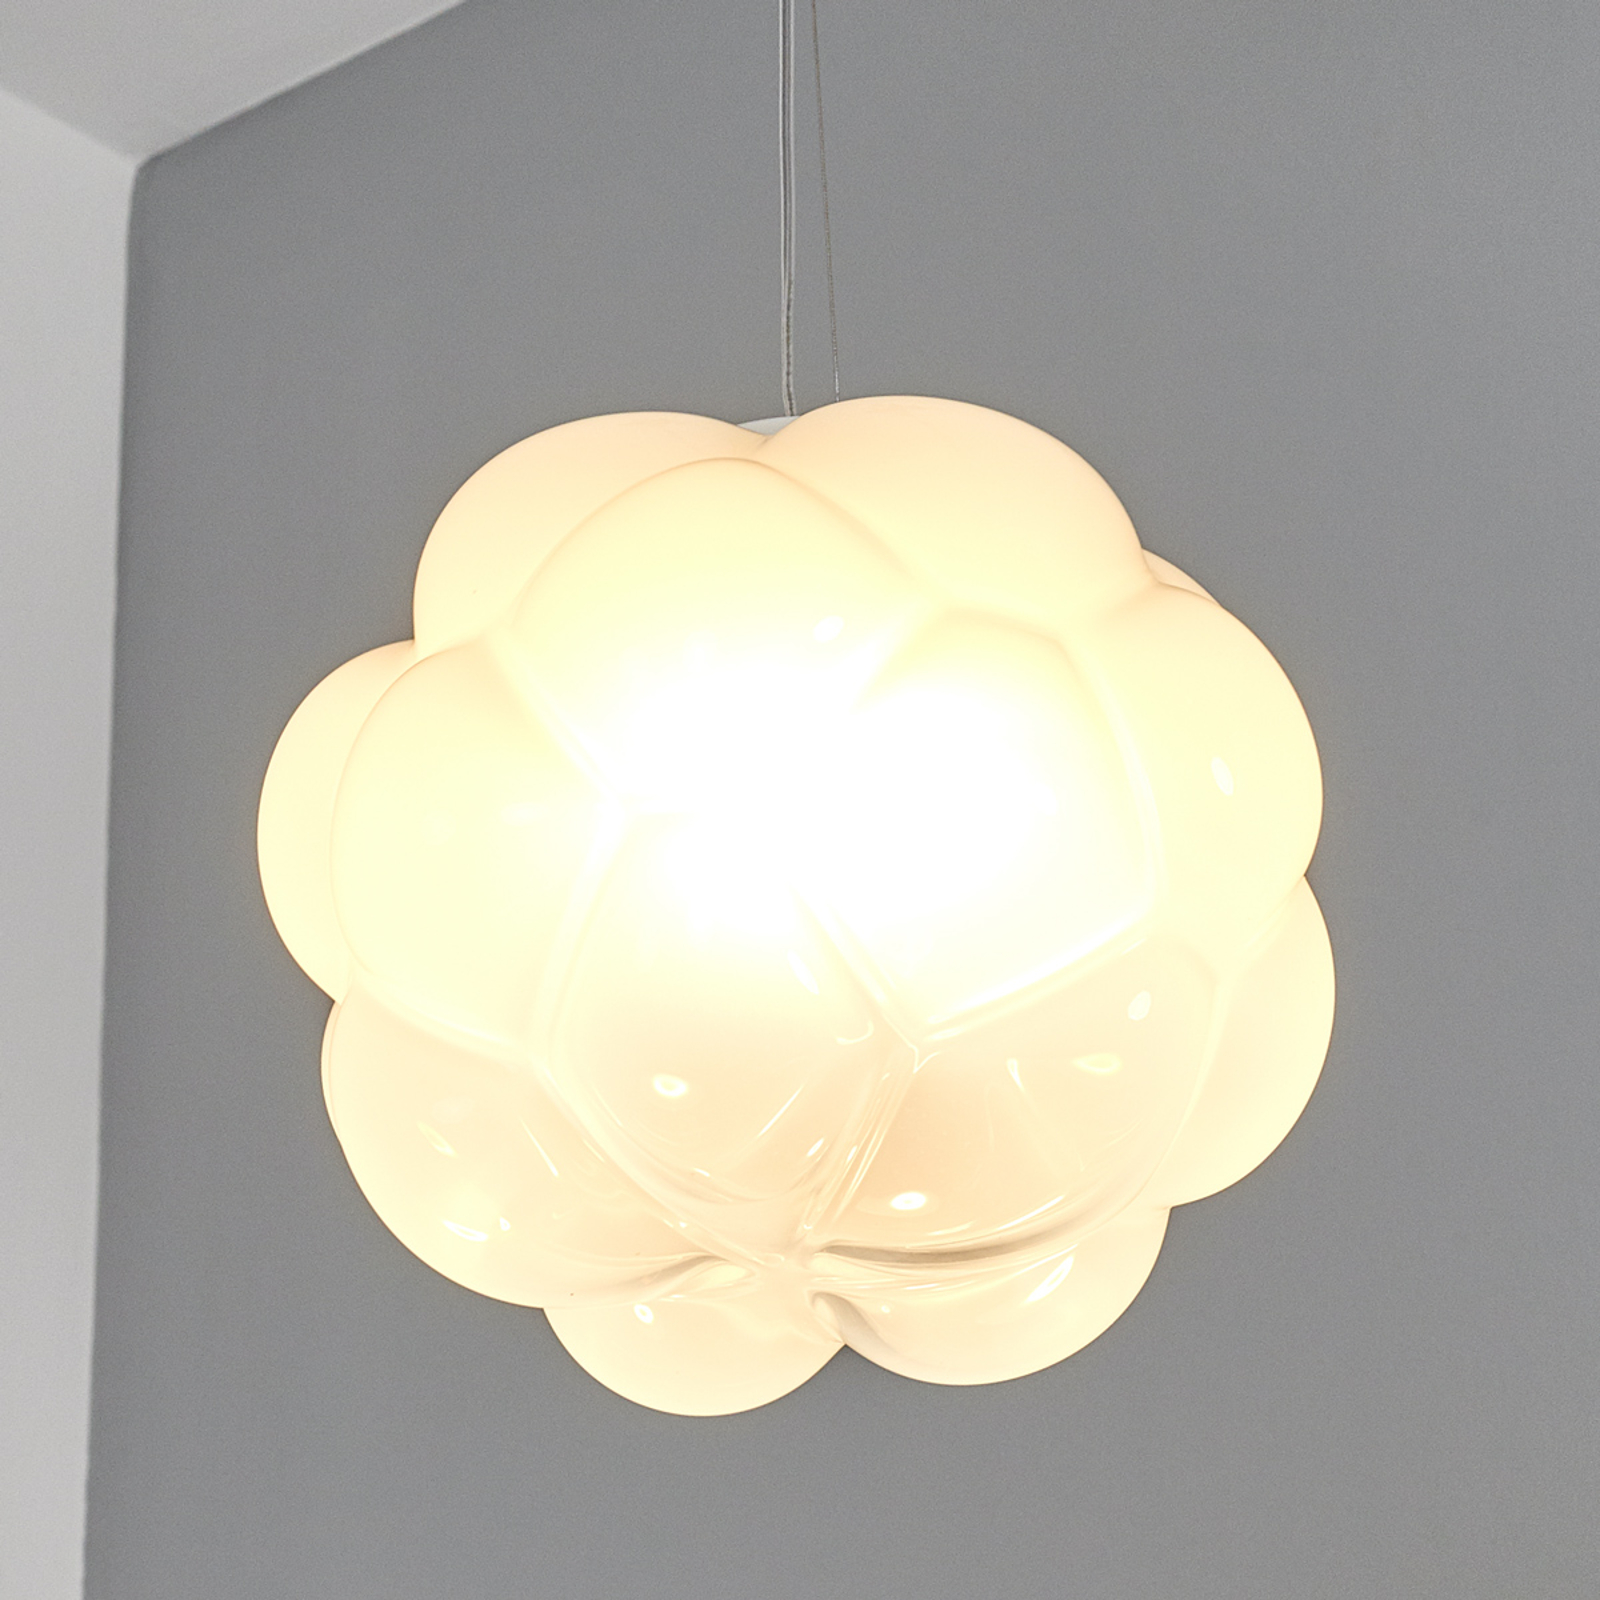 Suspension LED en forme de nuage Cloudy 26 cm